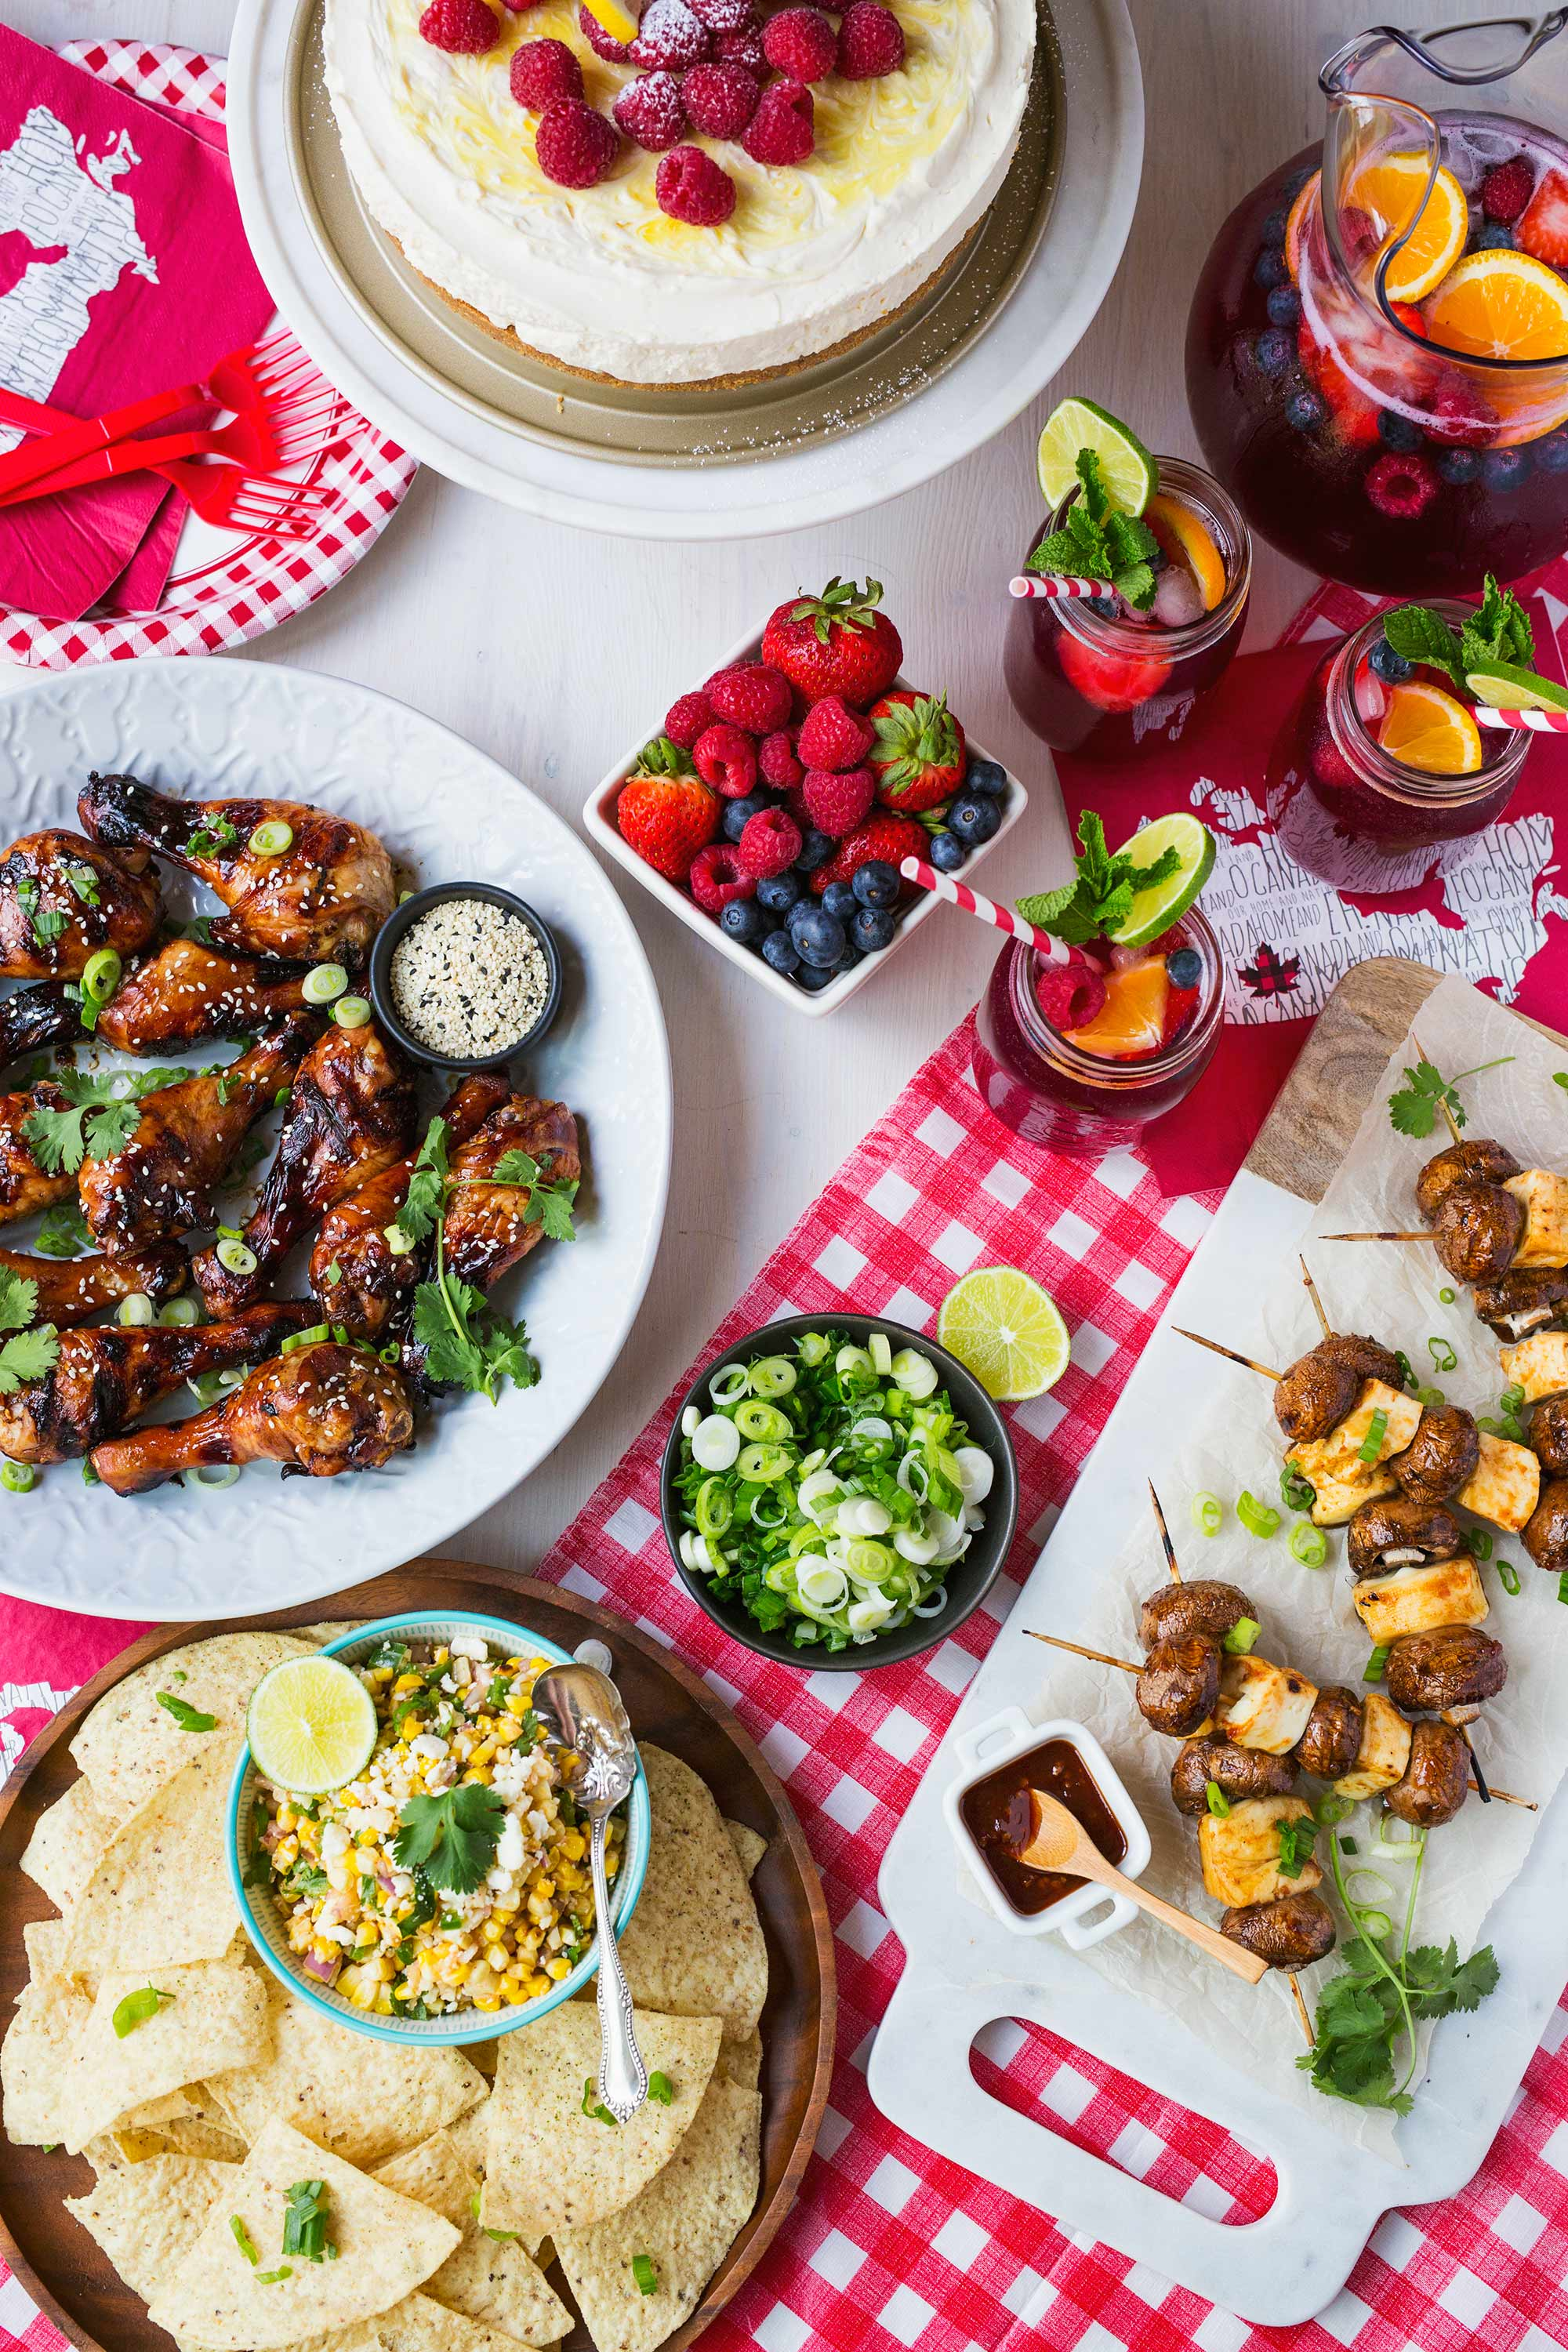 With Canada Day Quickly Approaching I Wanted To Put Together A Festive Menu That Can Be Prepared And Enjoyed Outside In The Backyard